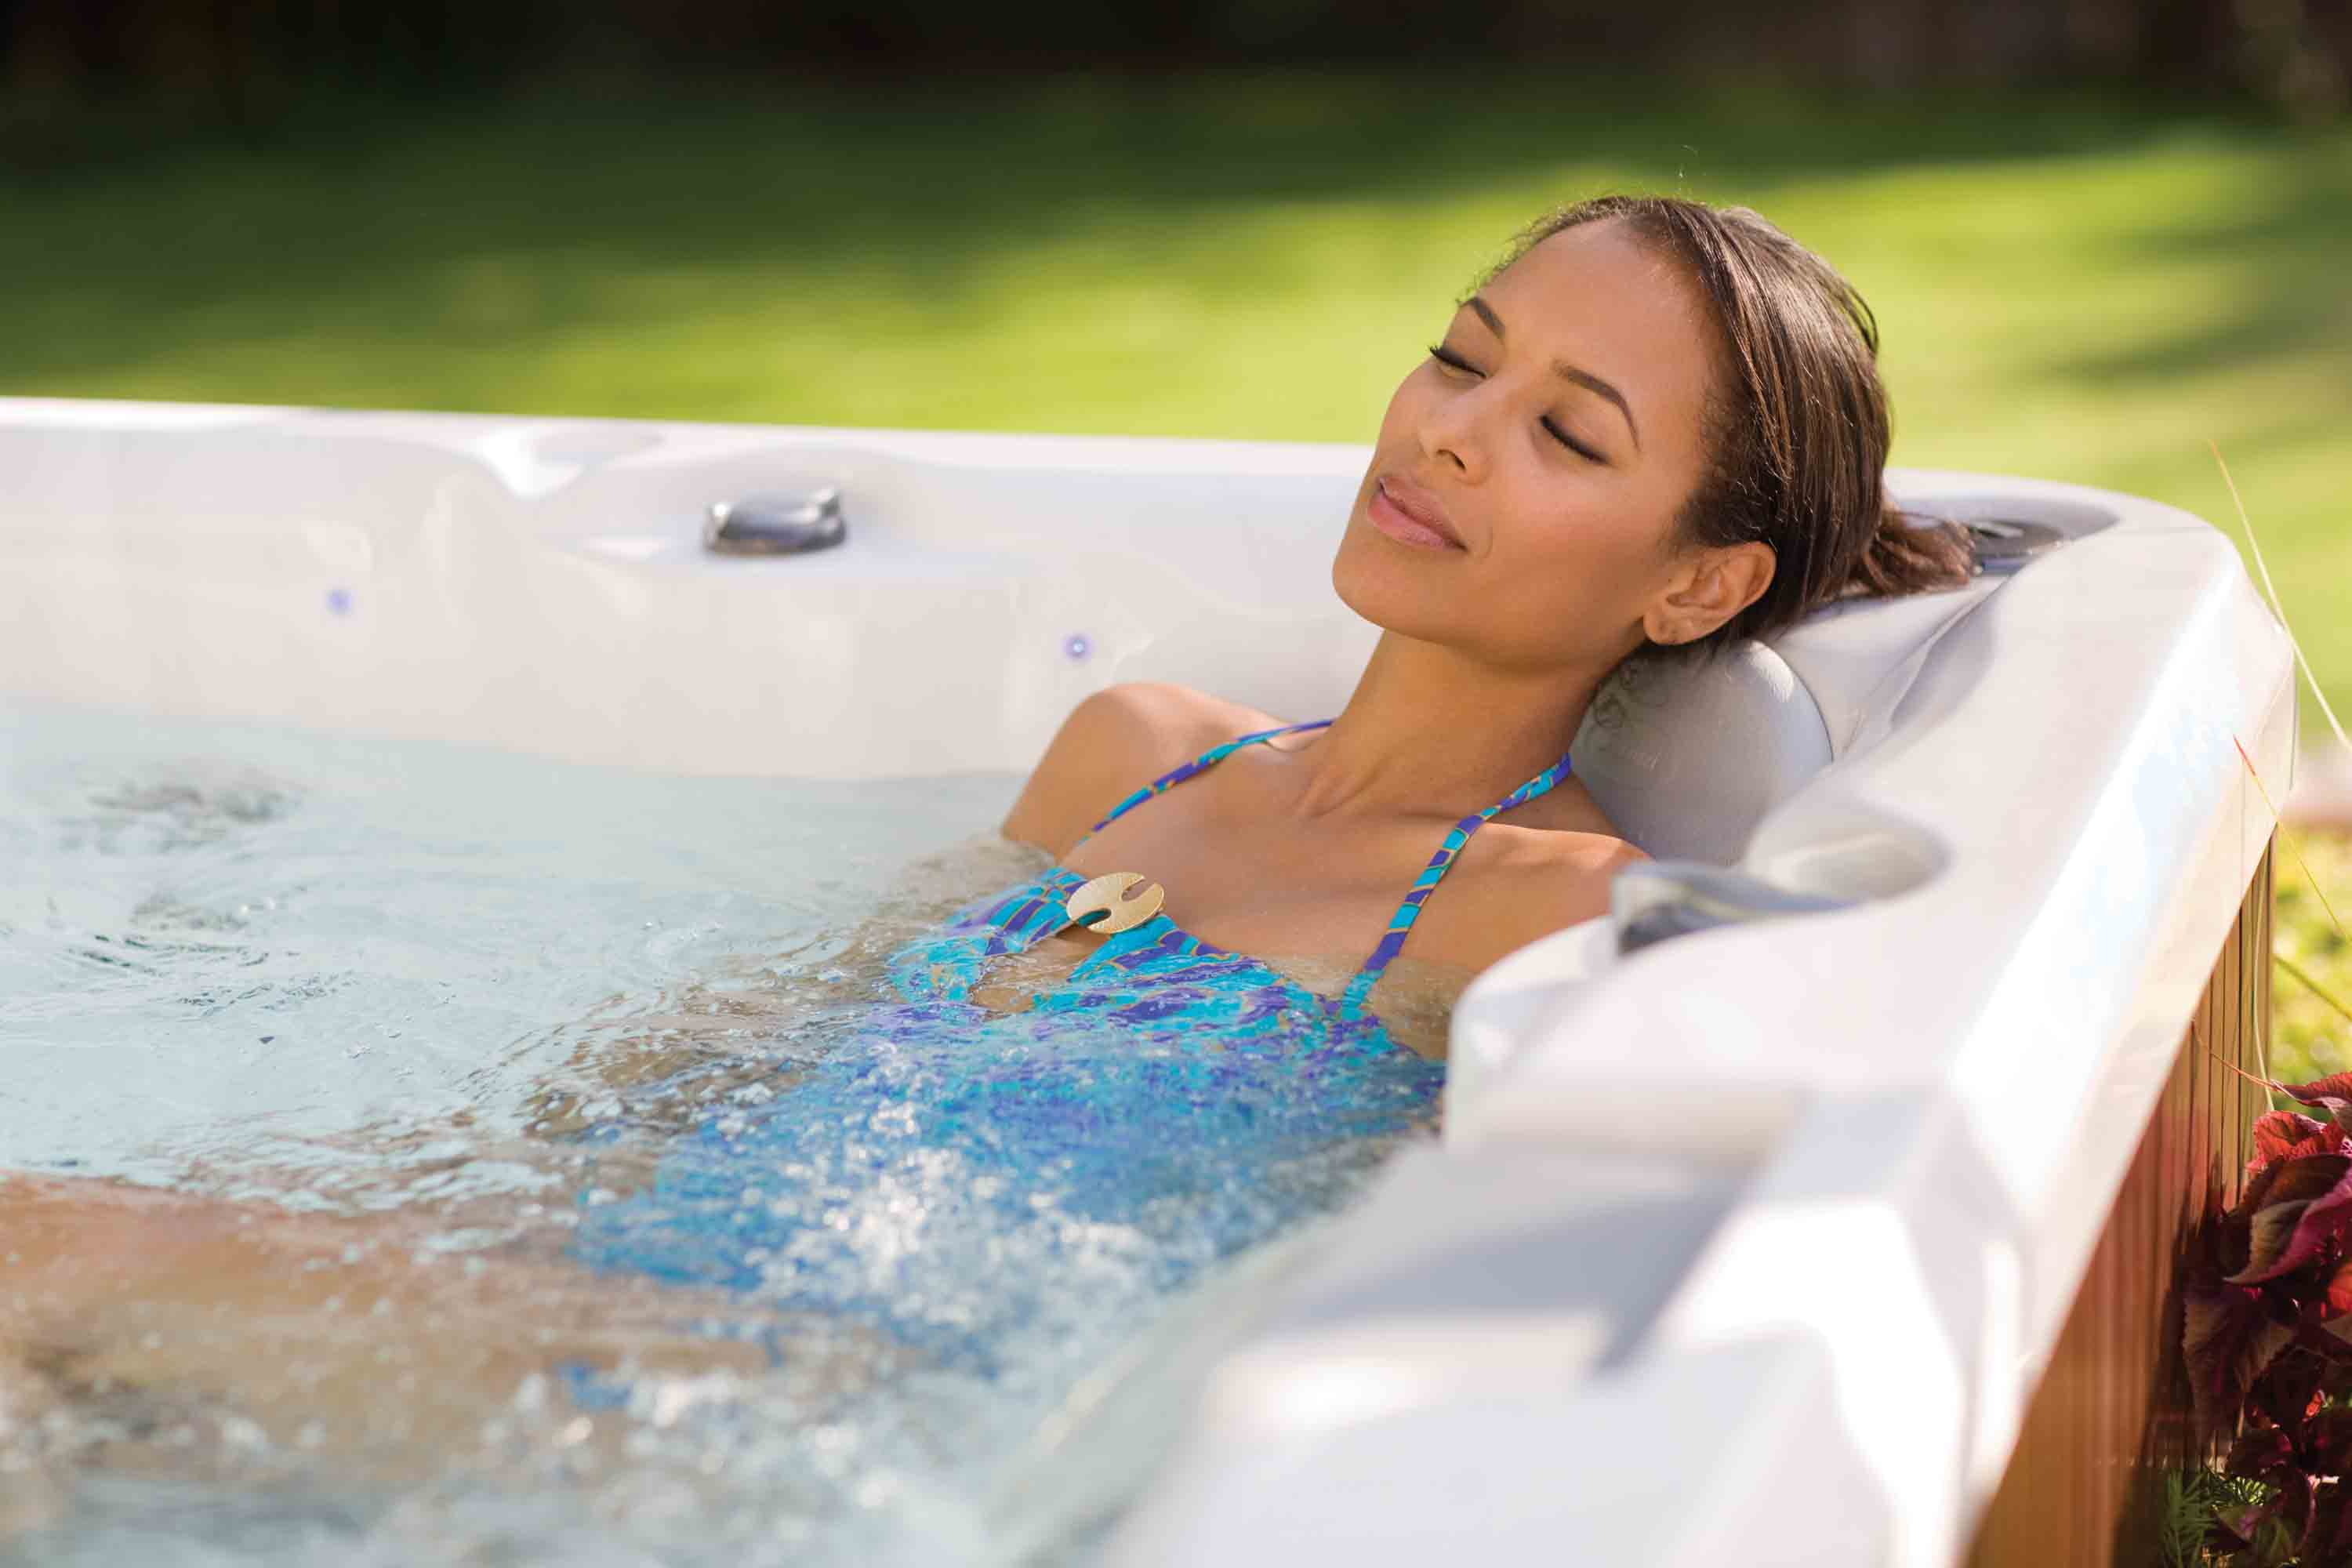 water therapy | BlahTherapy - Online Therapy and Counseling Services.